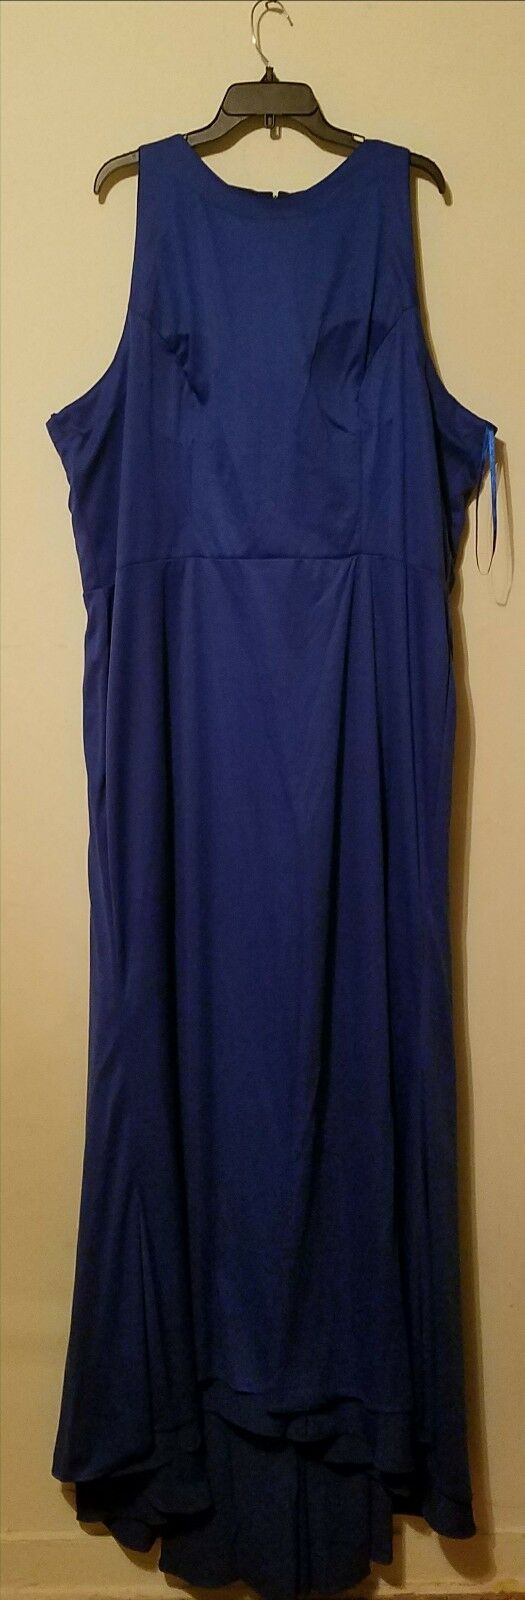 NWT Lara Designs Women's  Evening    Dress Gown  bluee sz 24 234462